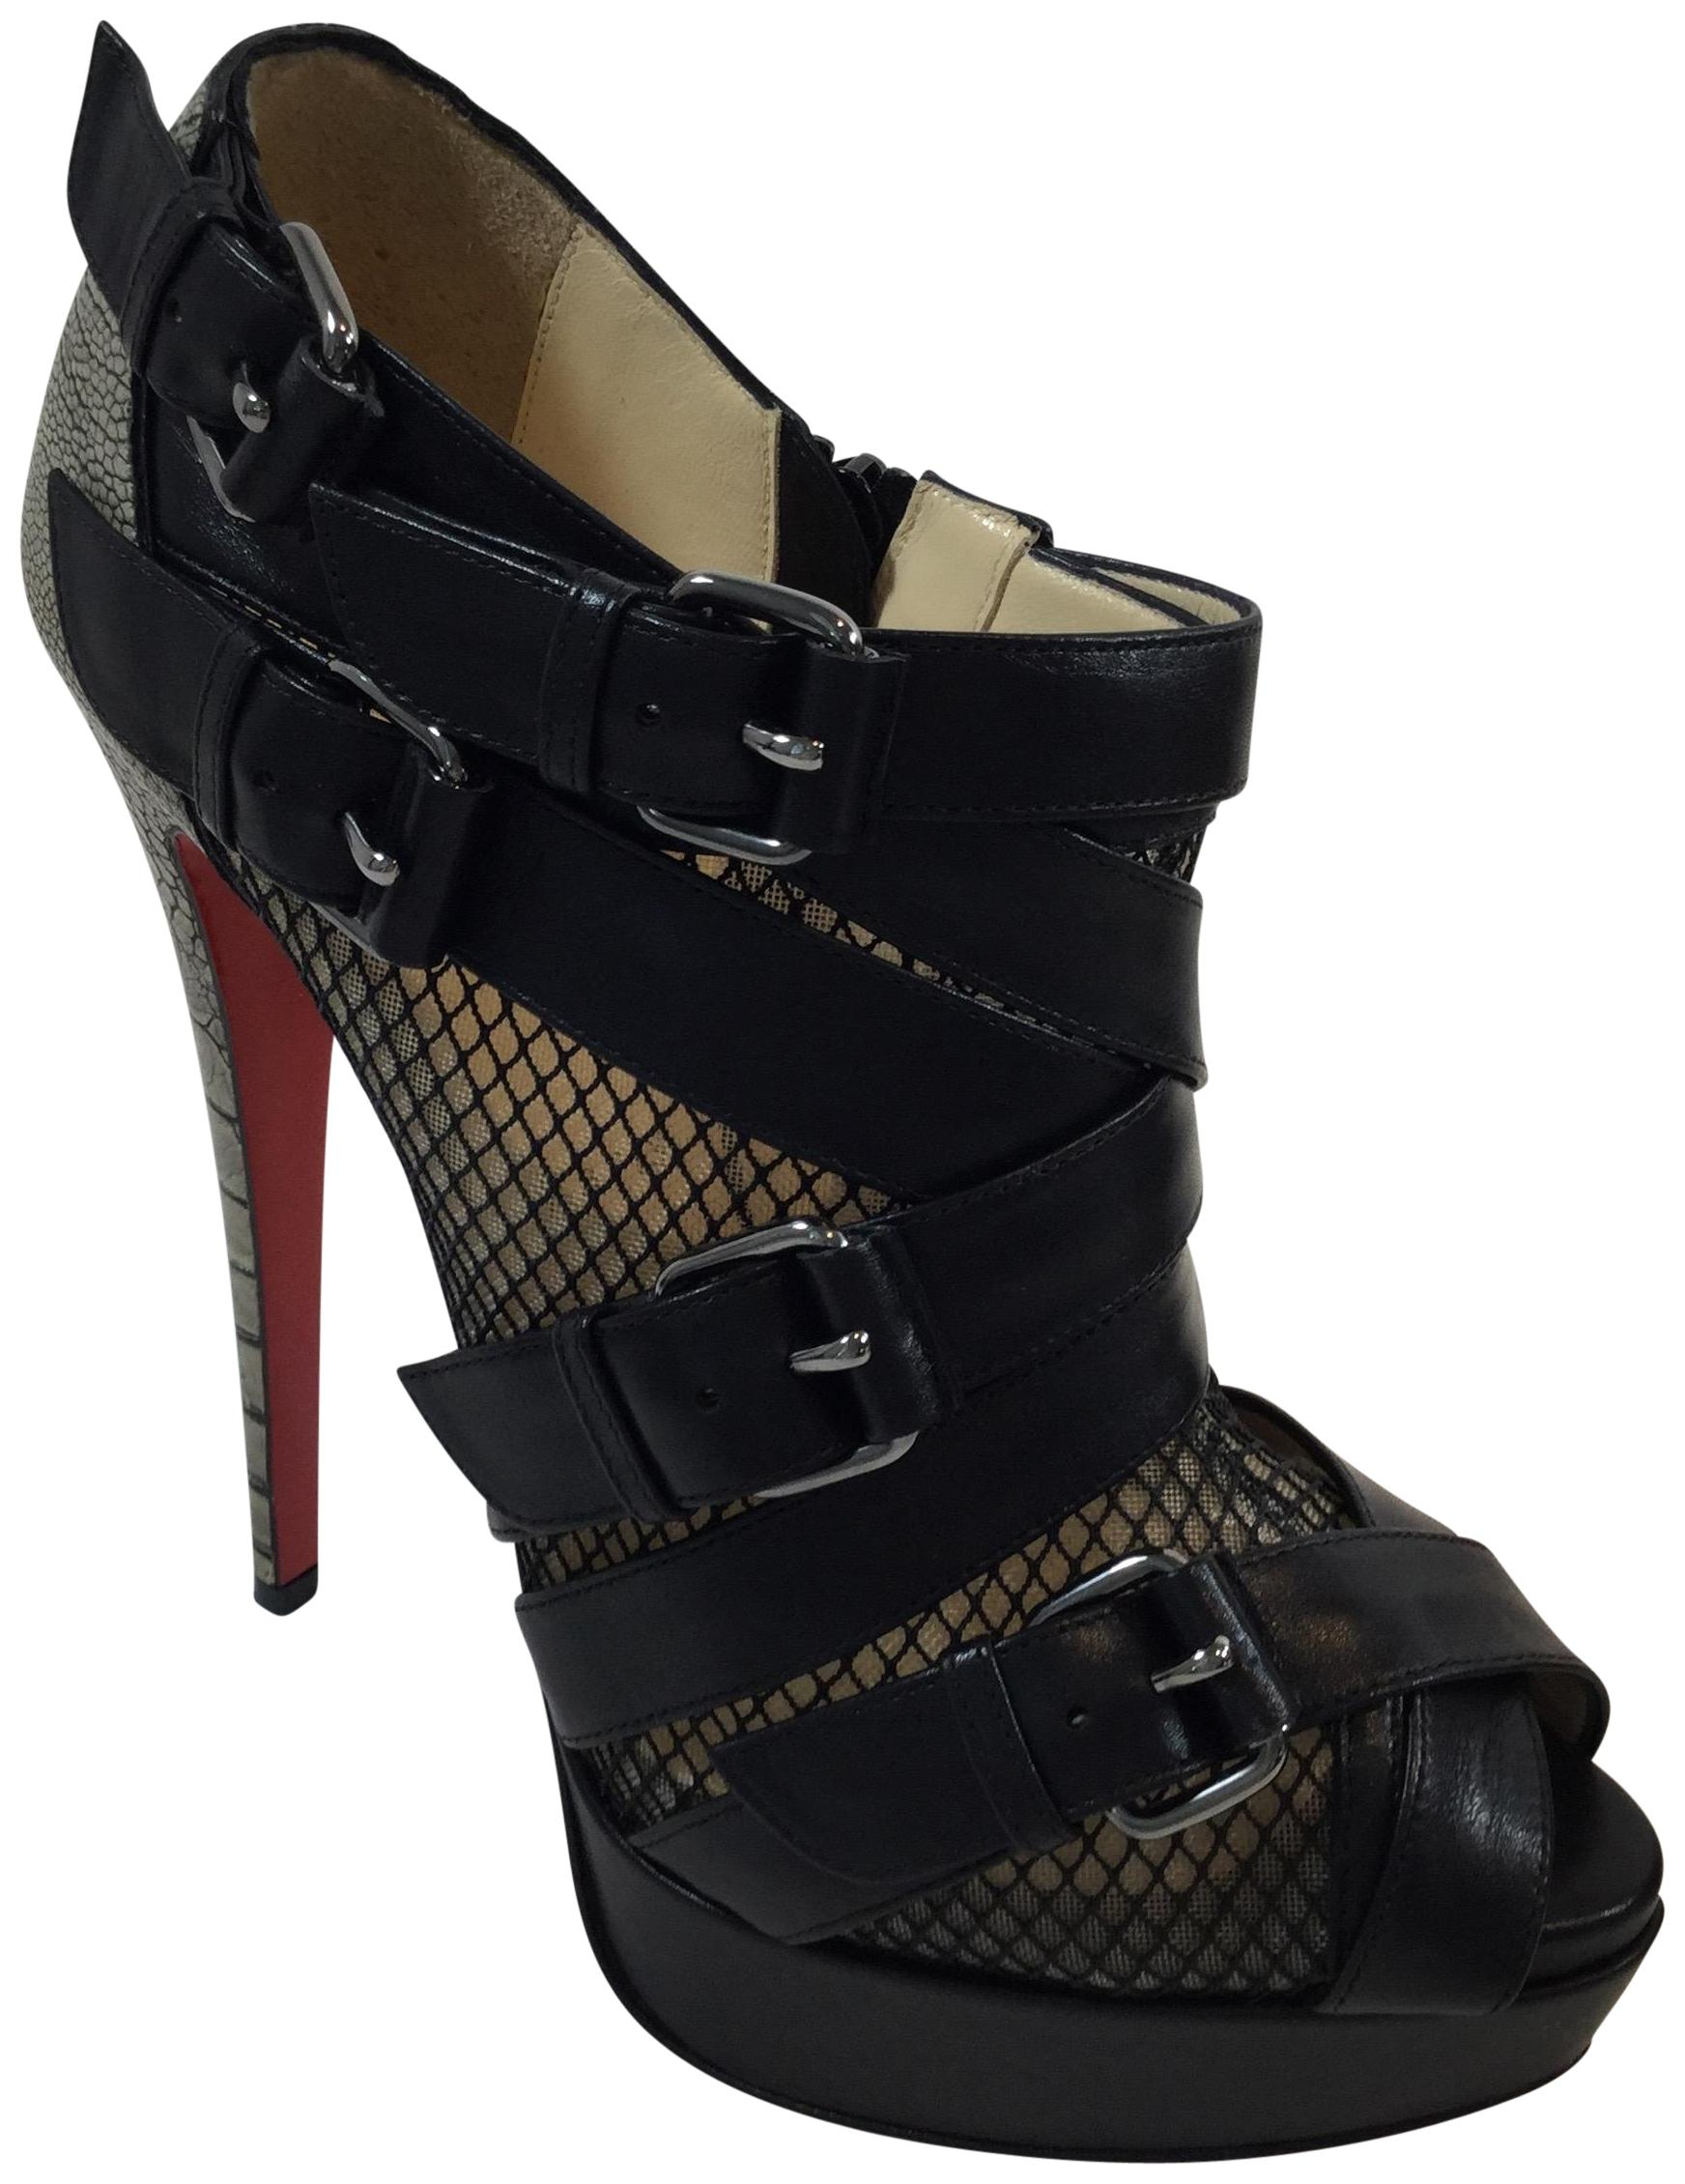 best service f7a5b 22c90 Christian Christian Christian Louboutin Black/Taupe Mad ...